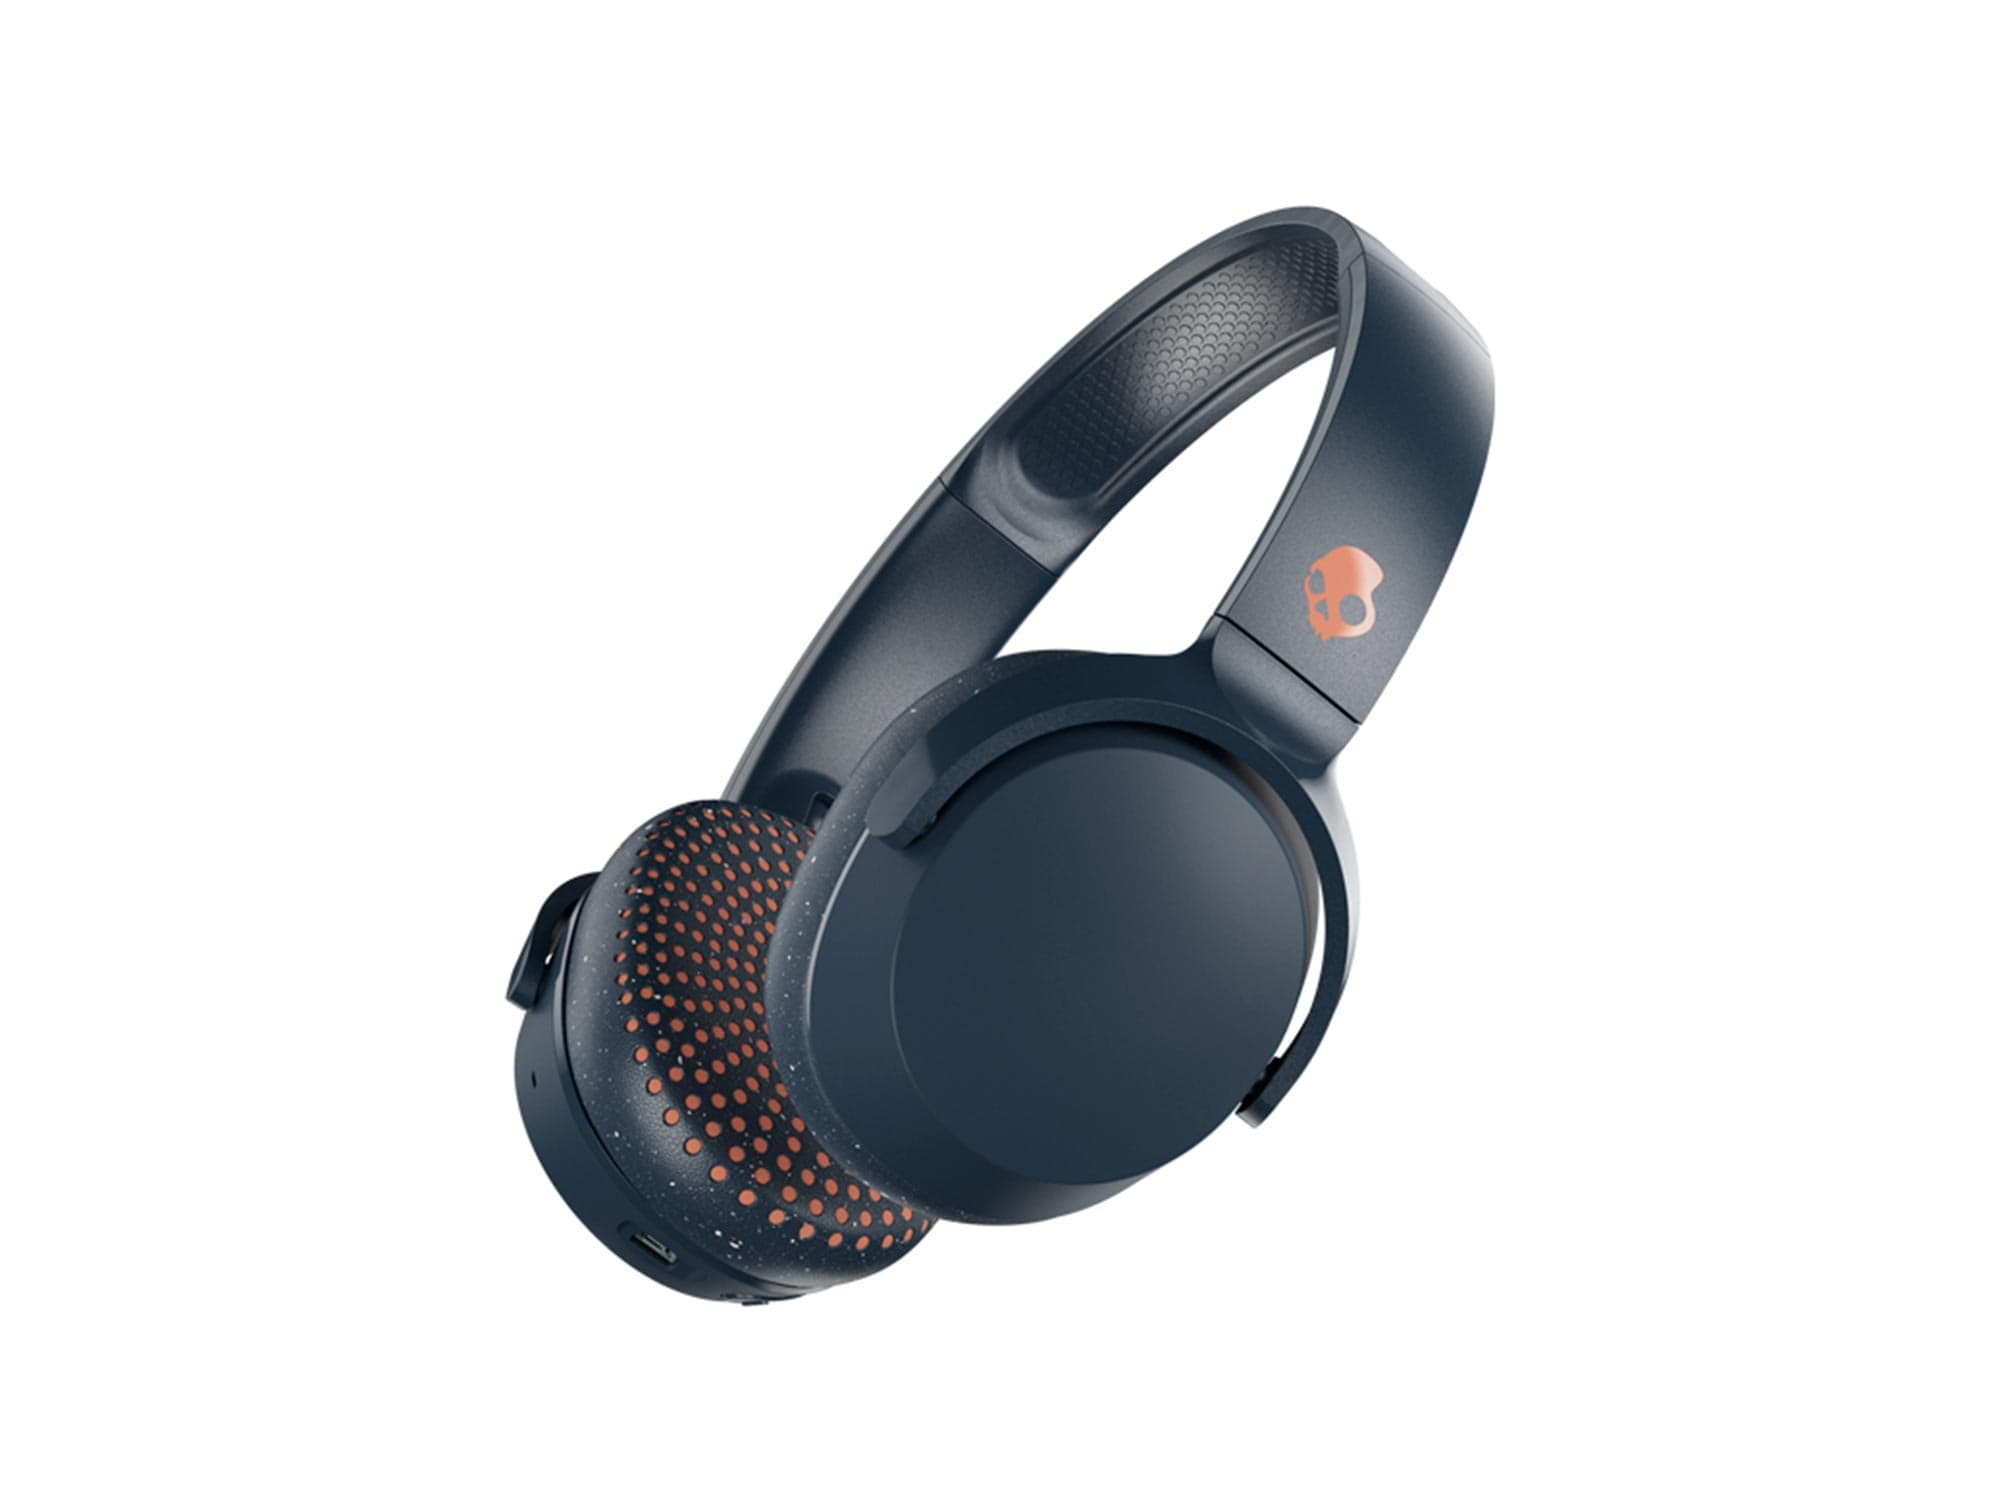 Audifonos Skullcandy Riff Wireless On-Ear Unisex Azul